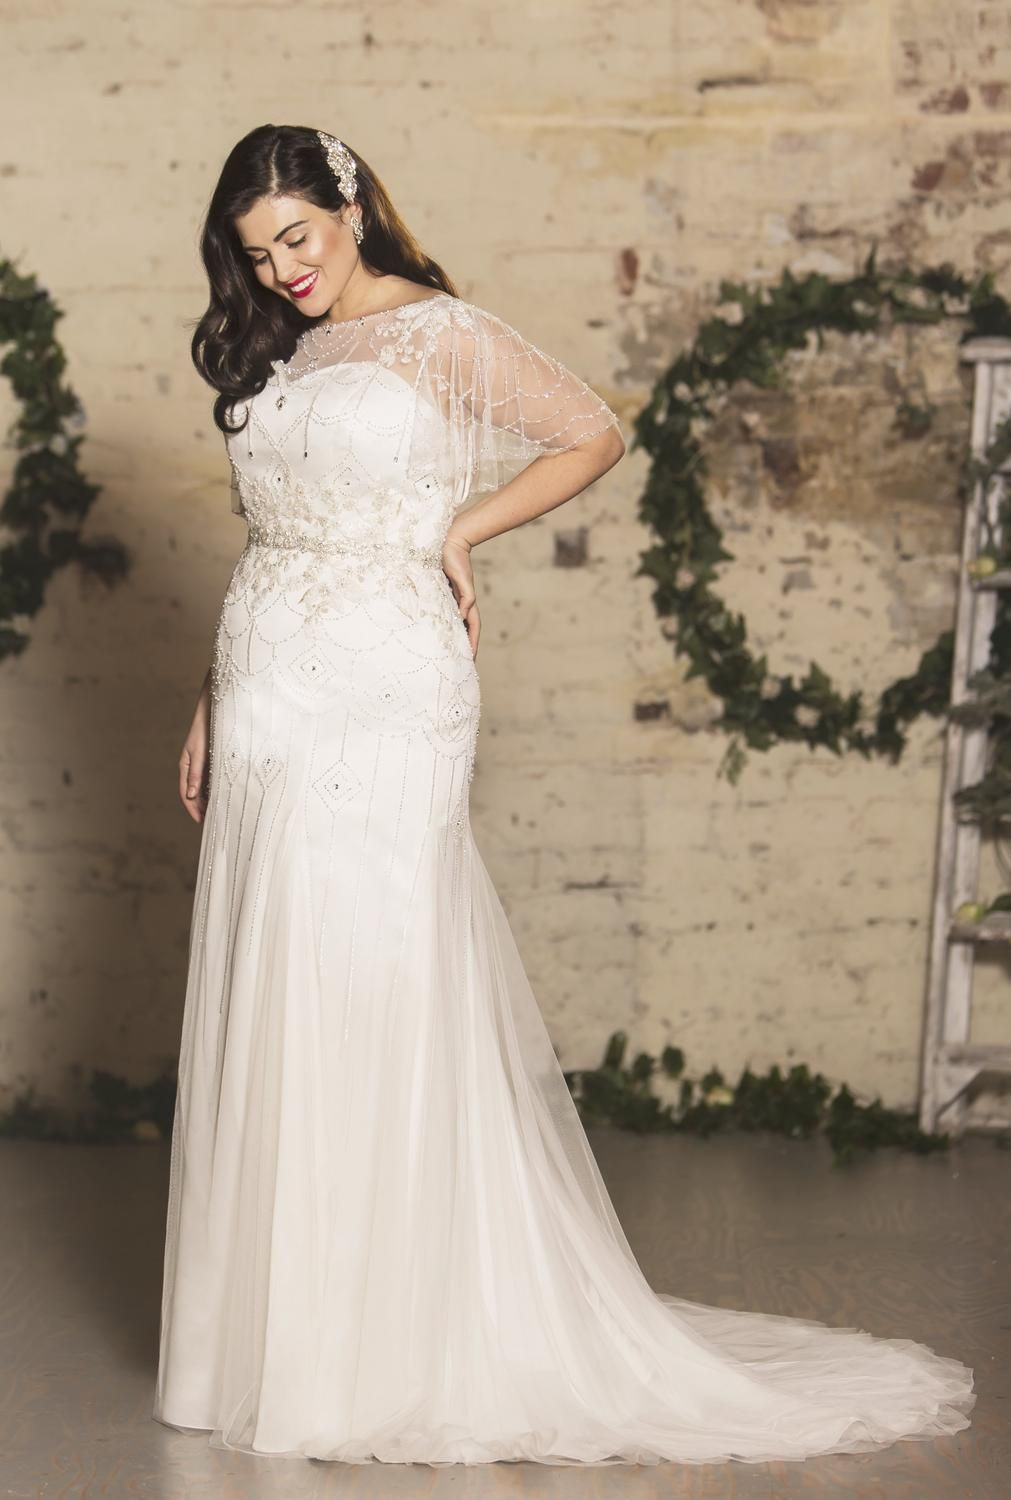 A 1920s style beaded wedding dress from true curves true